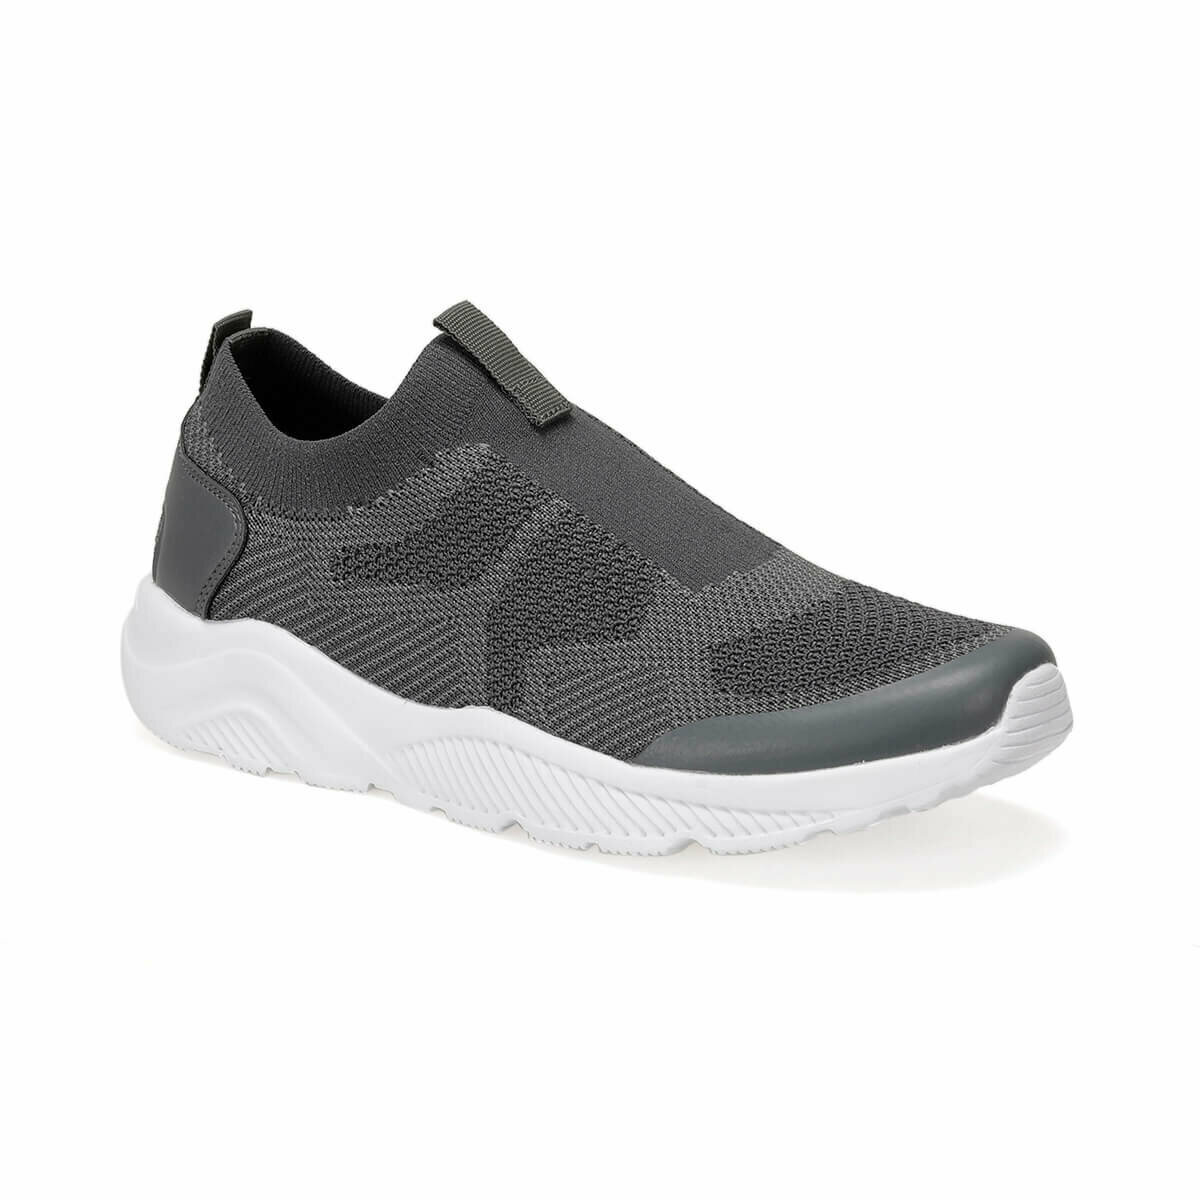 FLO CANTO Black Men 'S Comfort Shoes KINETIX